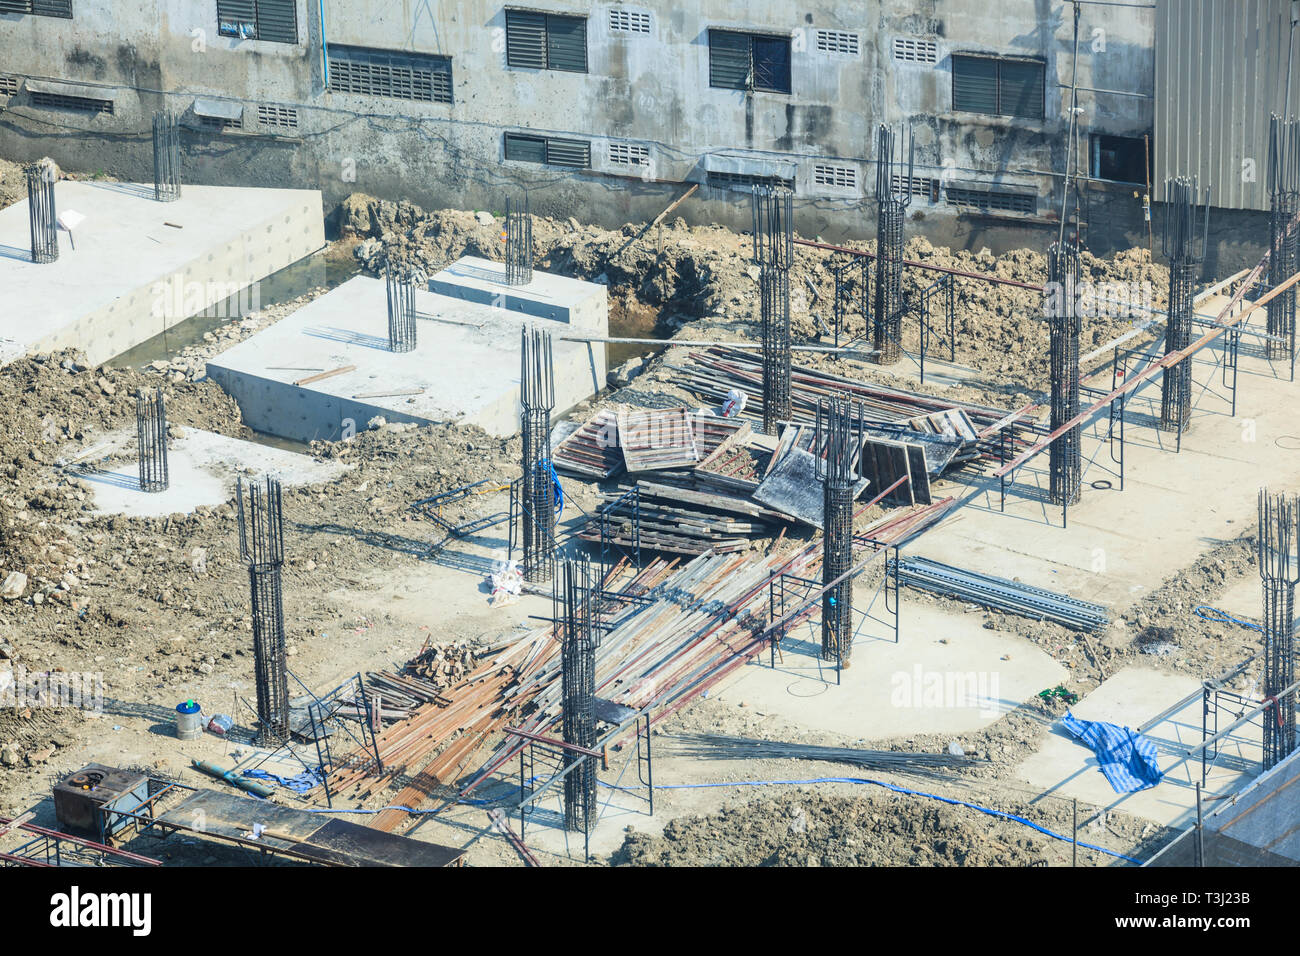 Construction Industry, Concrete building construction site. Concrete piles driven into the substructure ground at foundation pit. Industrial Business, - Stock Image